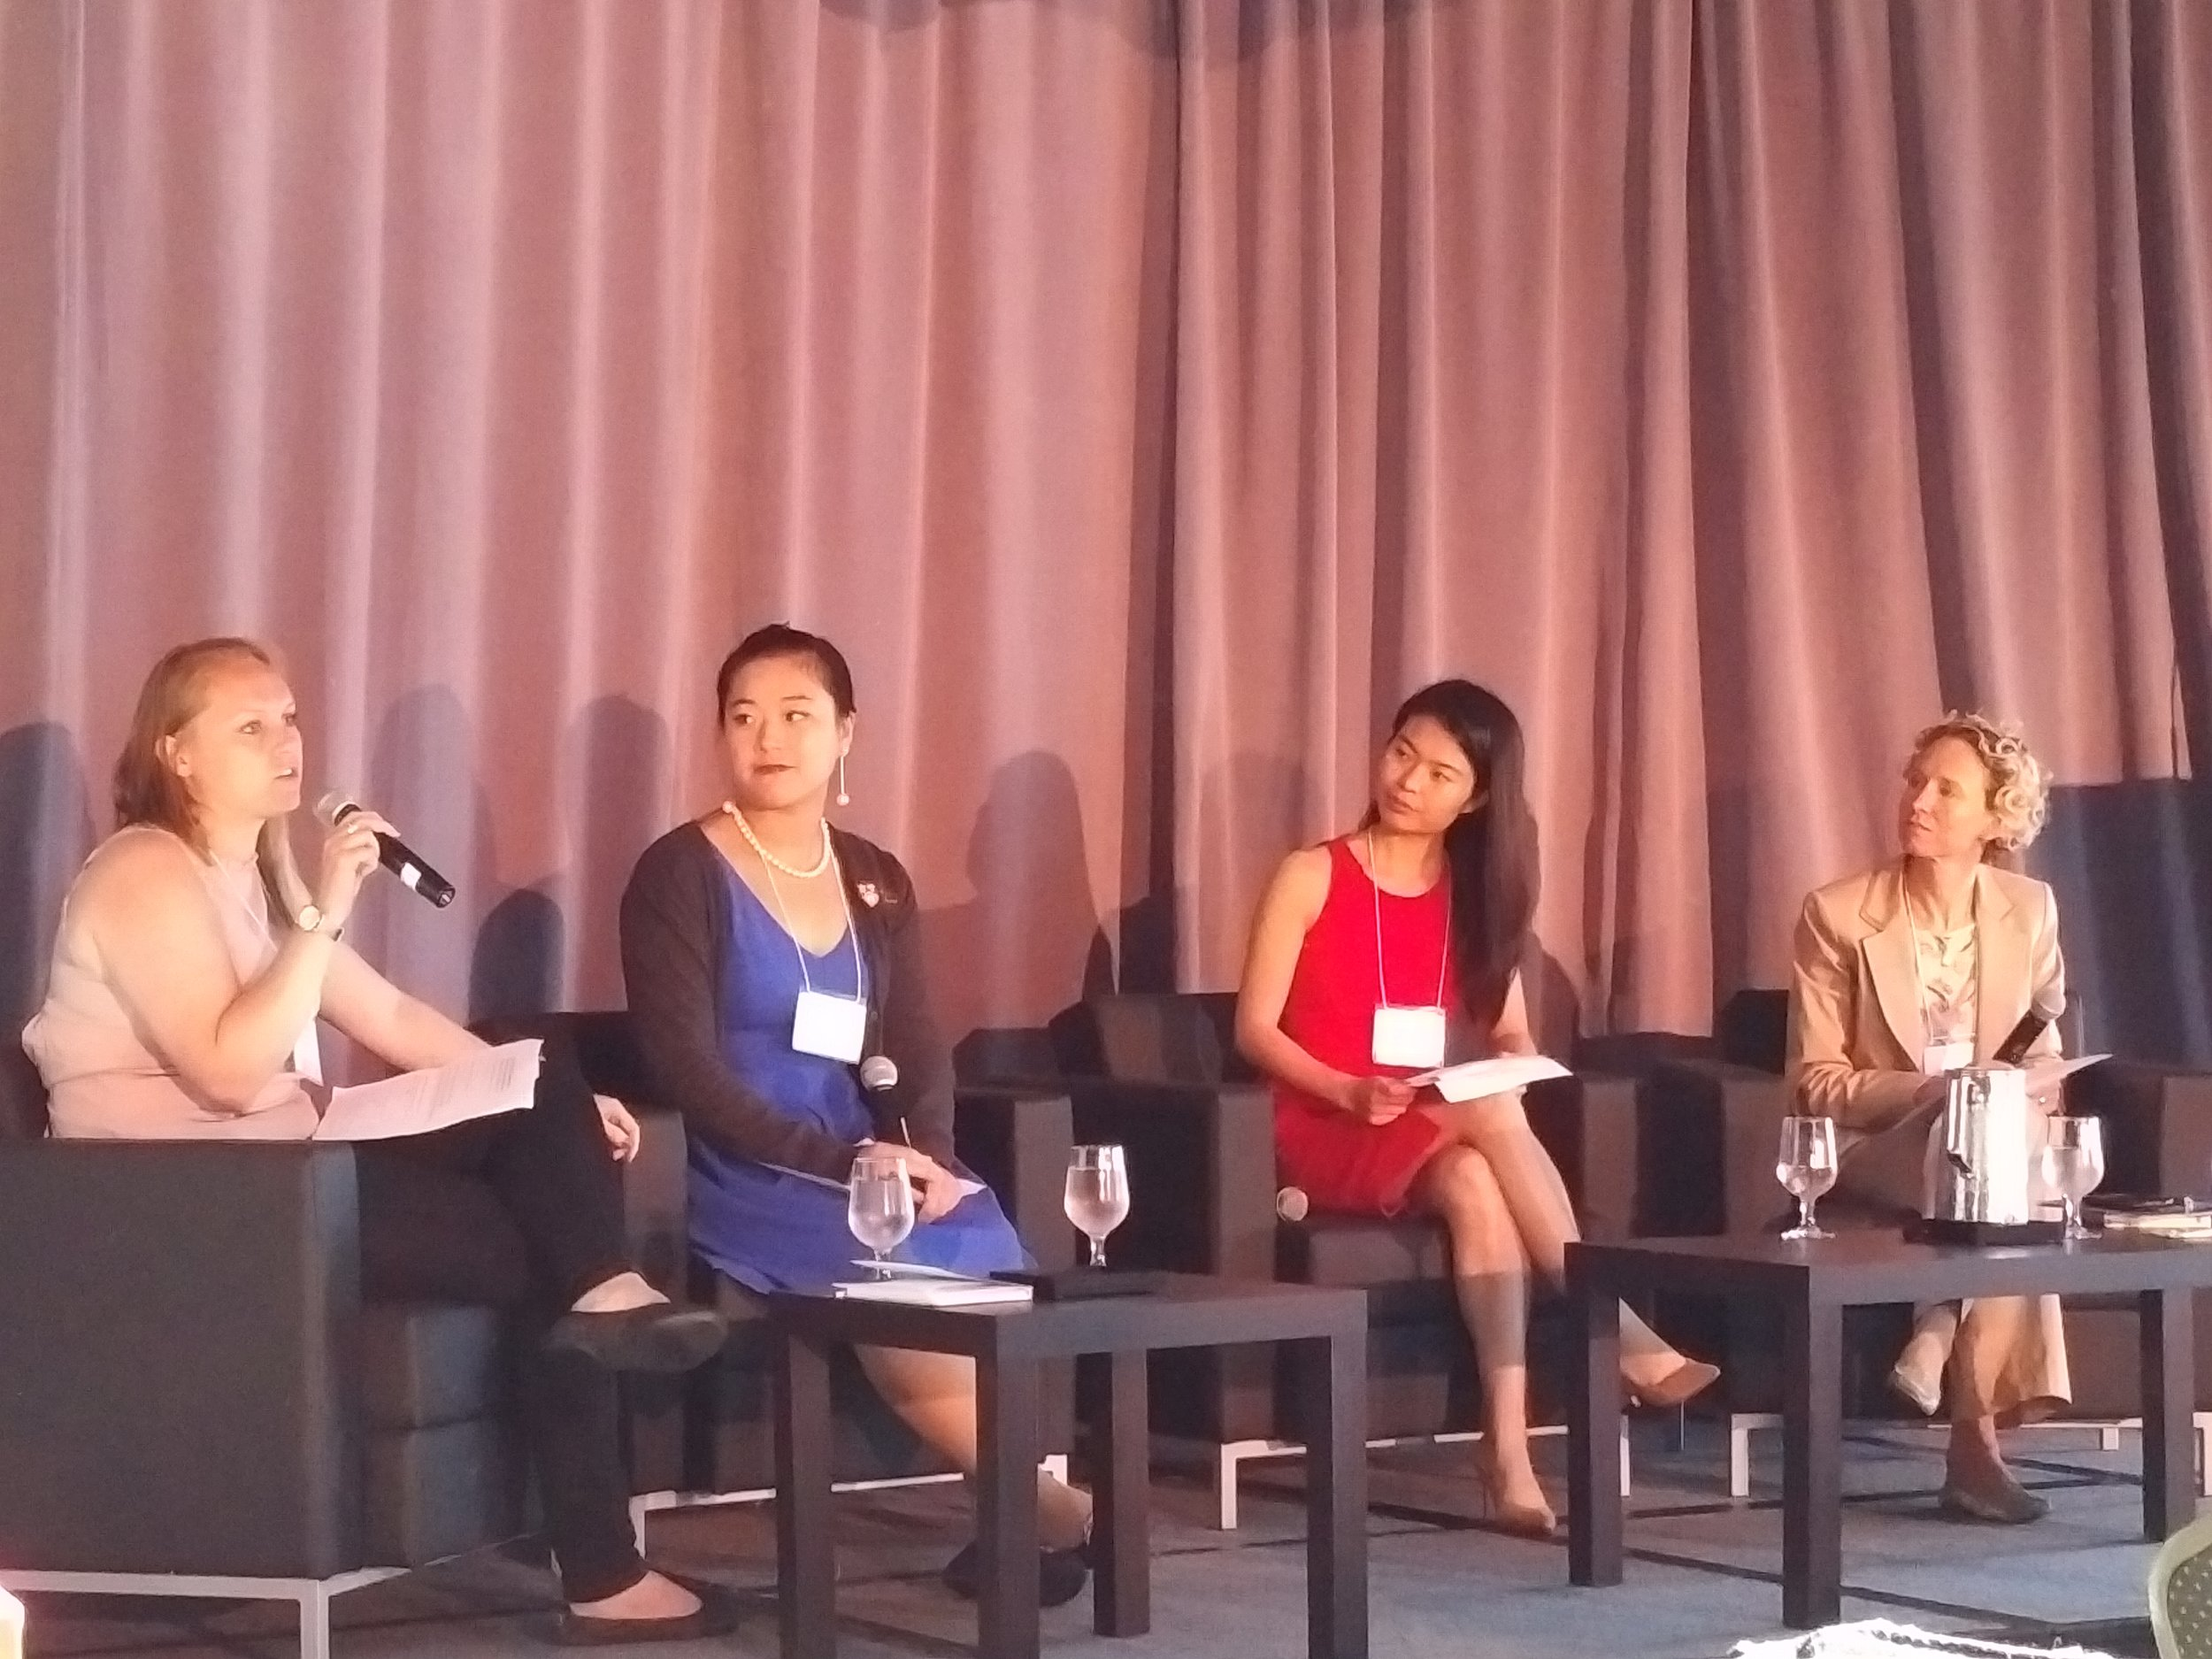 Recent international graduates, (left to right) Mischka Jacobs, Freya Qi and Christine Qin Yang, talk about their international experience and their transition from student to professional with Wendy Luther (far right), President & CEO of EduNova, as moderator